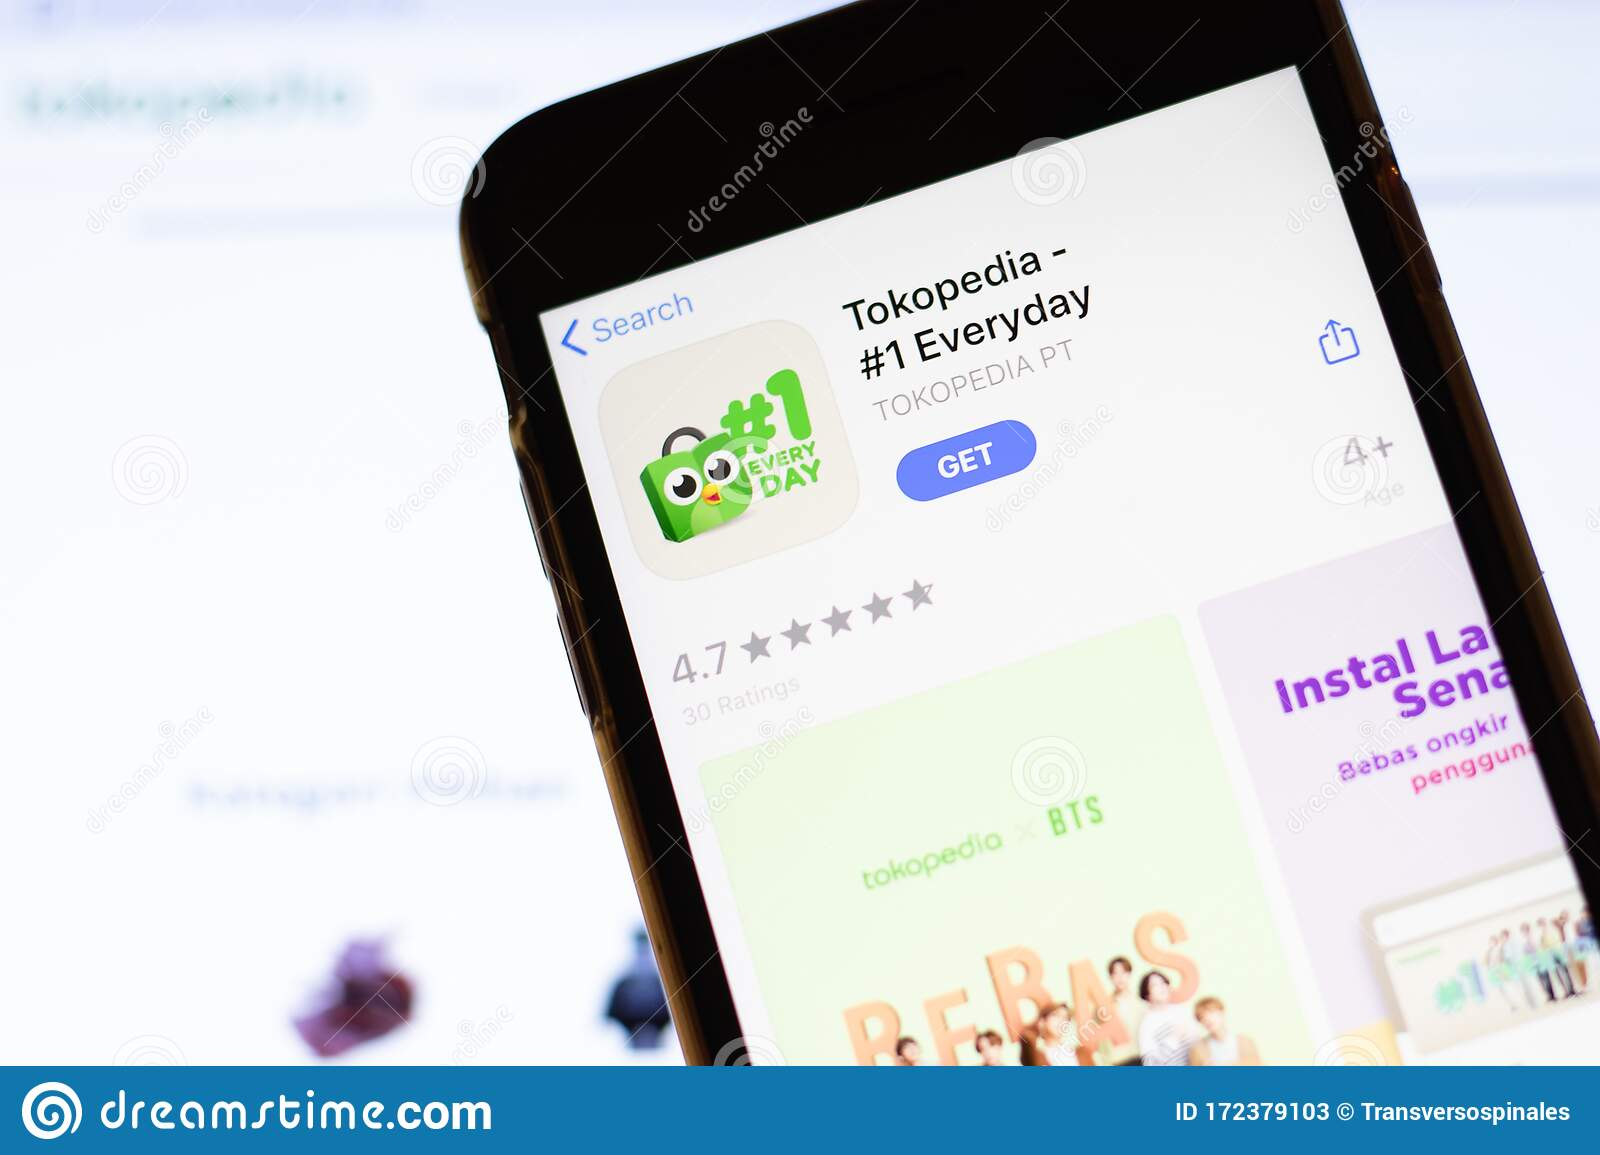 los angeles california usa 12 february 2020 mobile phone with tokopedia icon on screen close up with website on laptop editorial stock photo image of website screen 172379103 dreamstime com